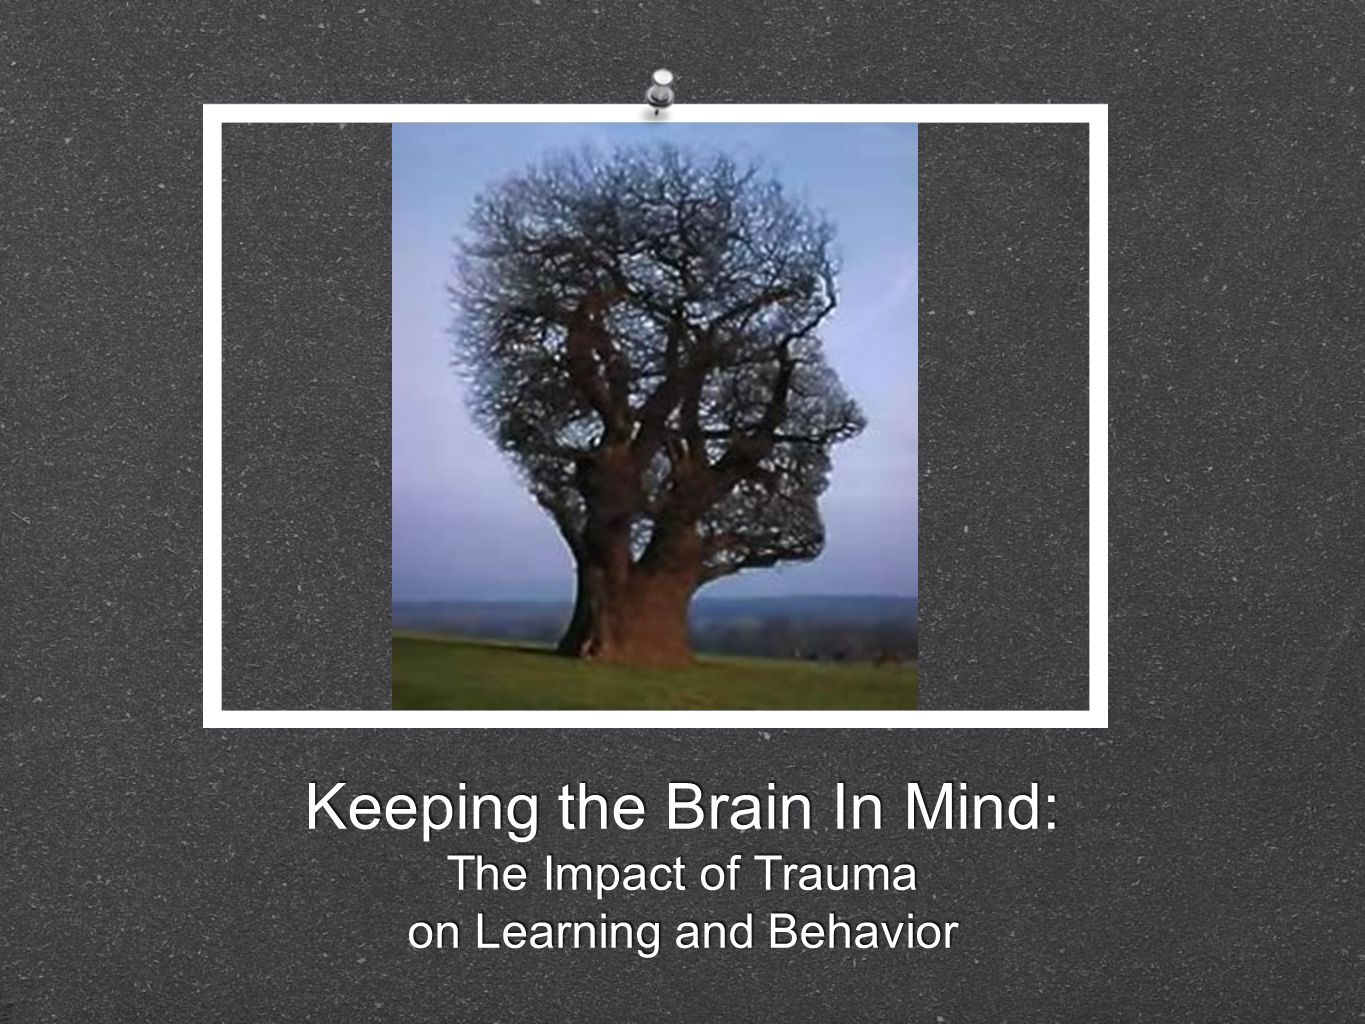 Keeping the Brain In Mind: The Impact of Trauma on Learning and Behavior